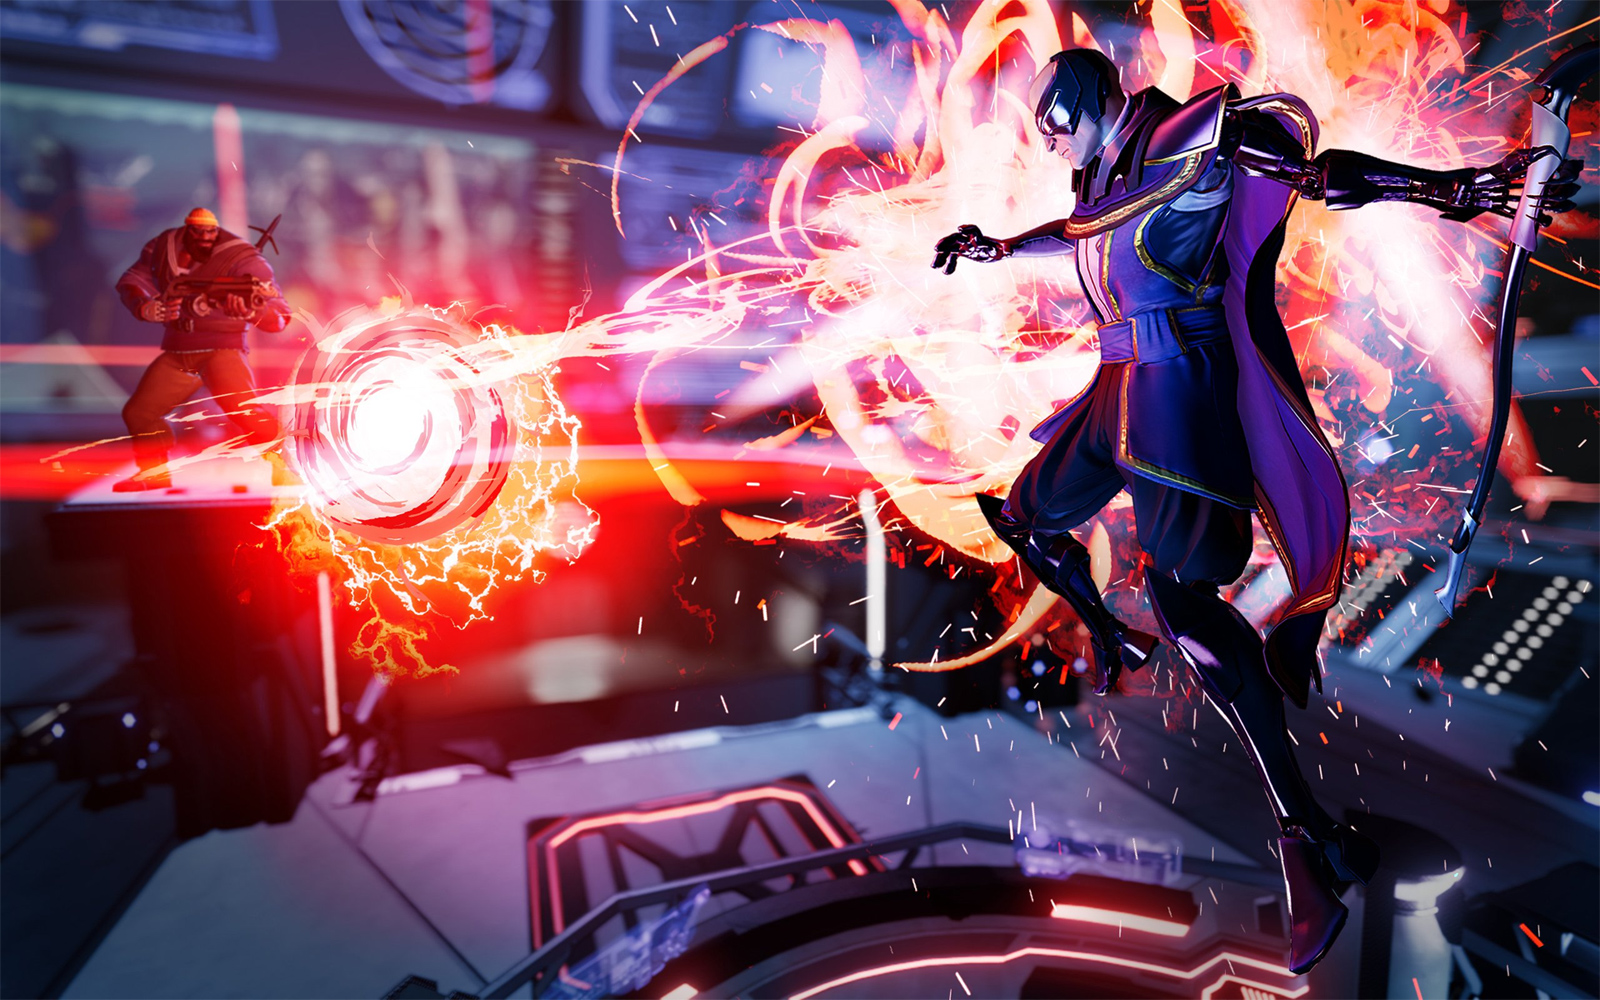 Volition's Agents of Mayhem has a lot of potential screenshot